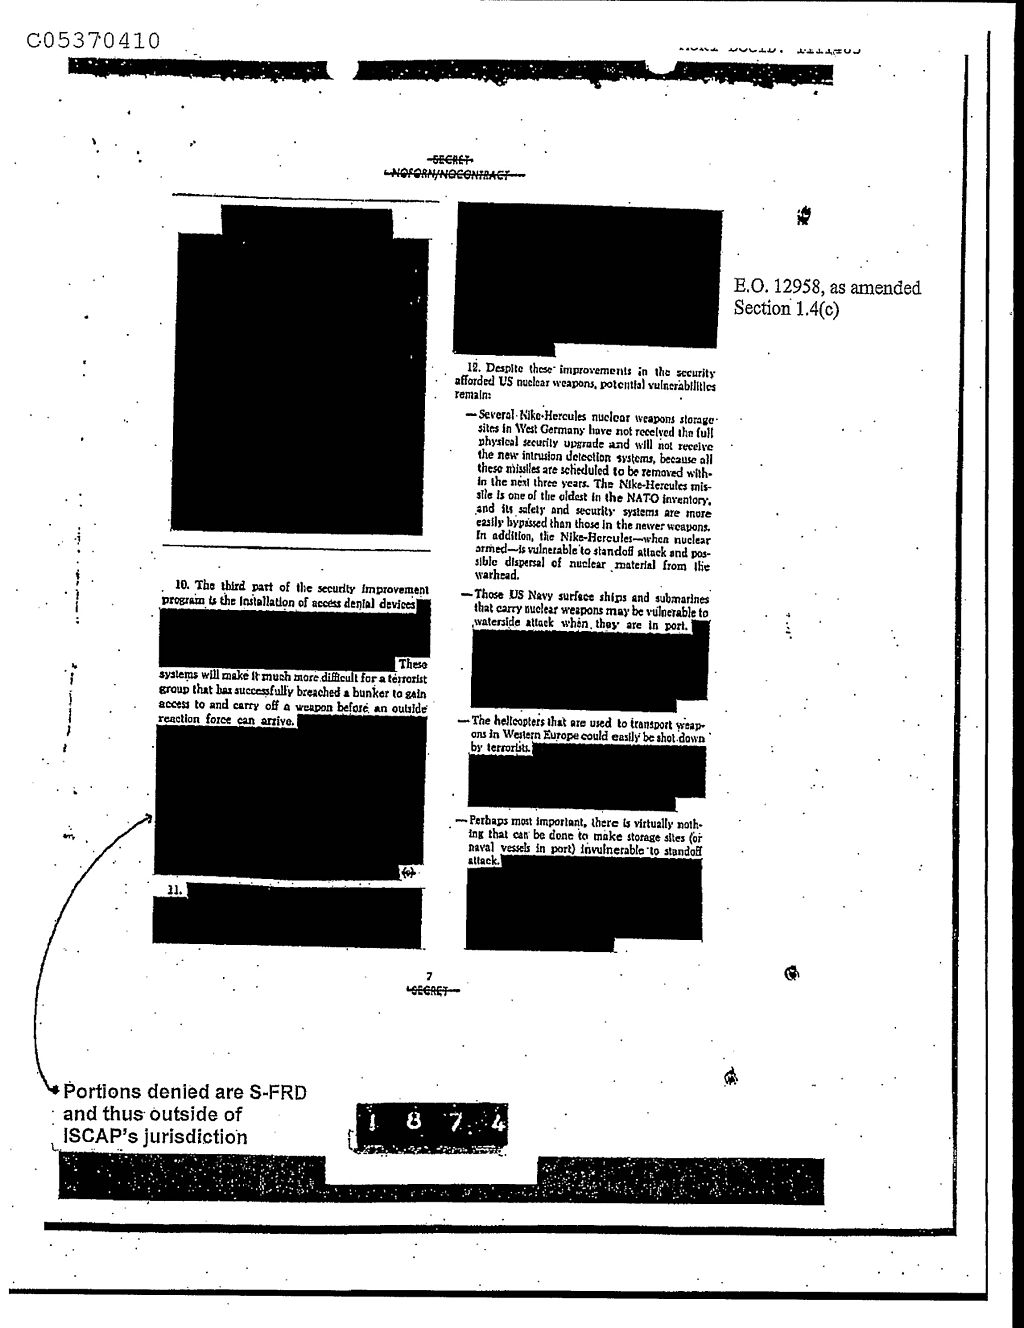 1024px-Redacted_CIA_document